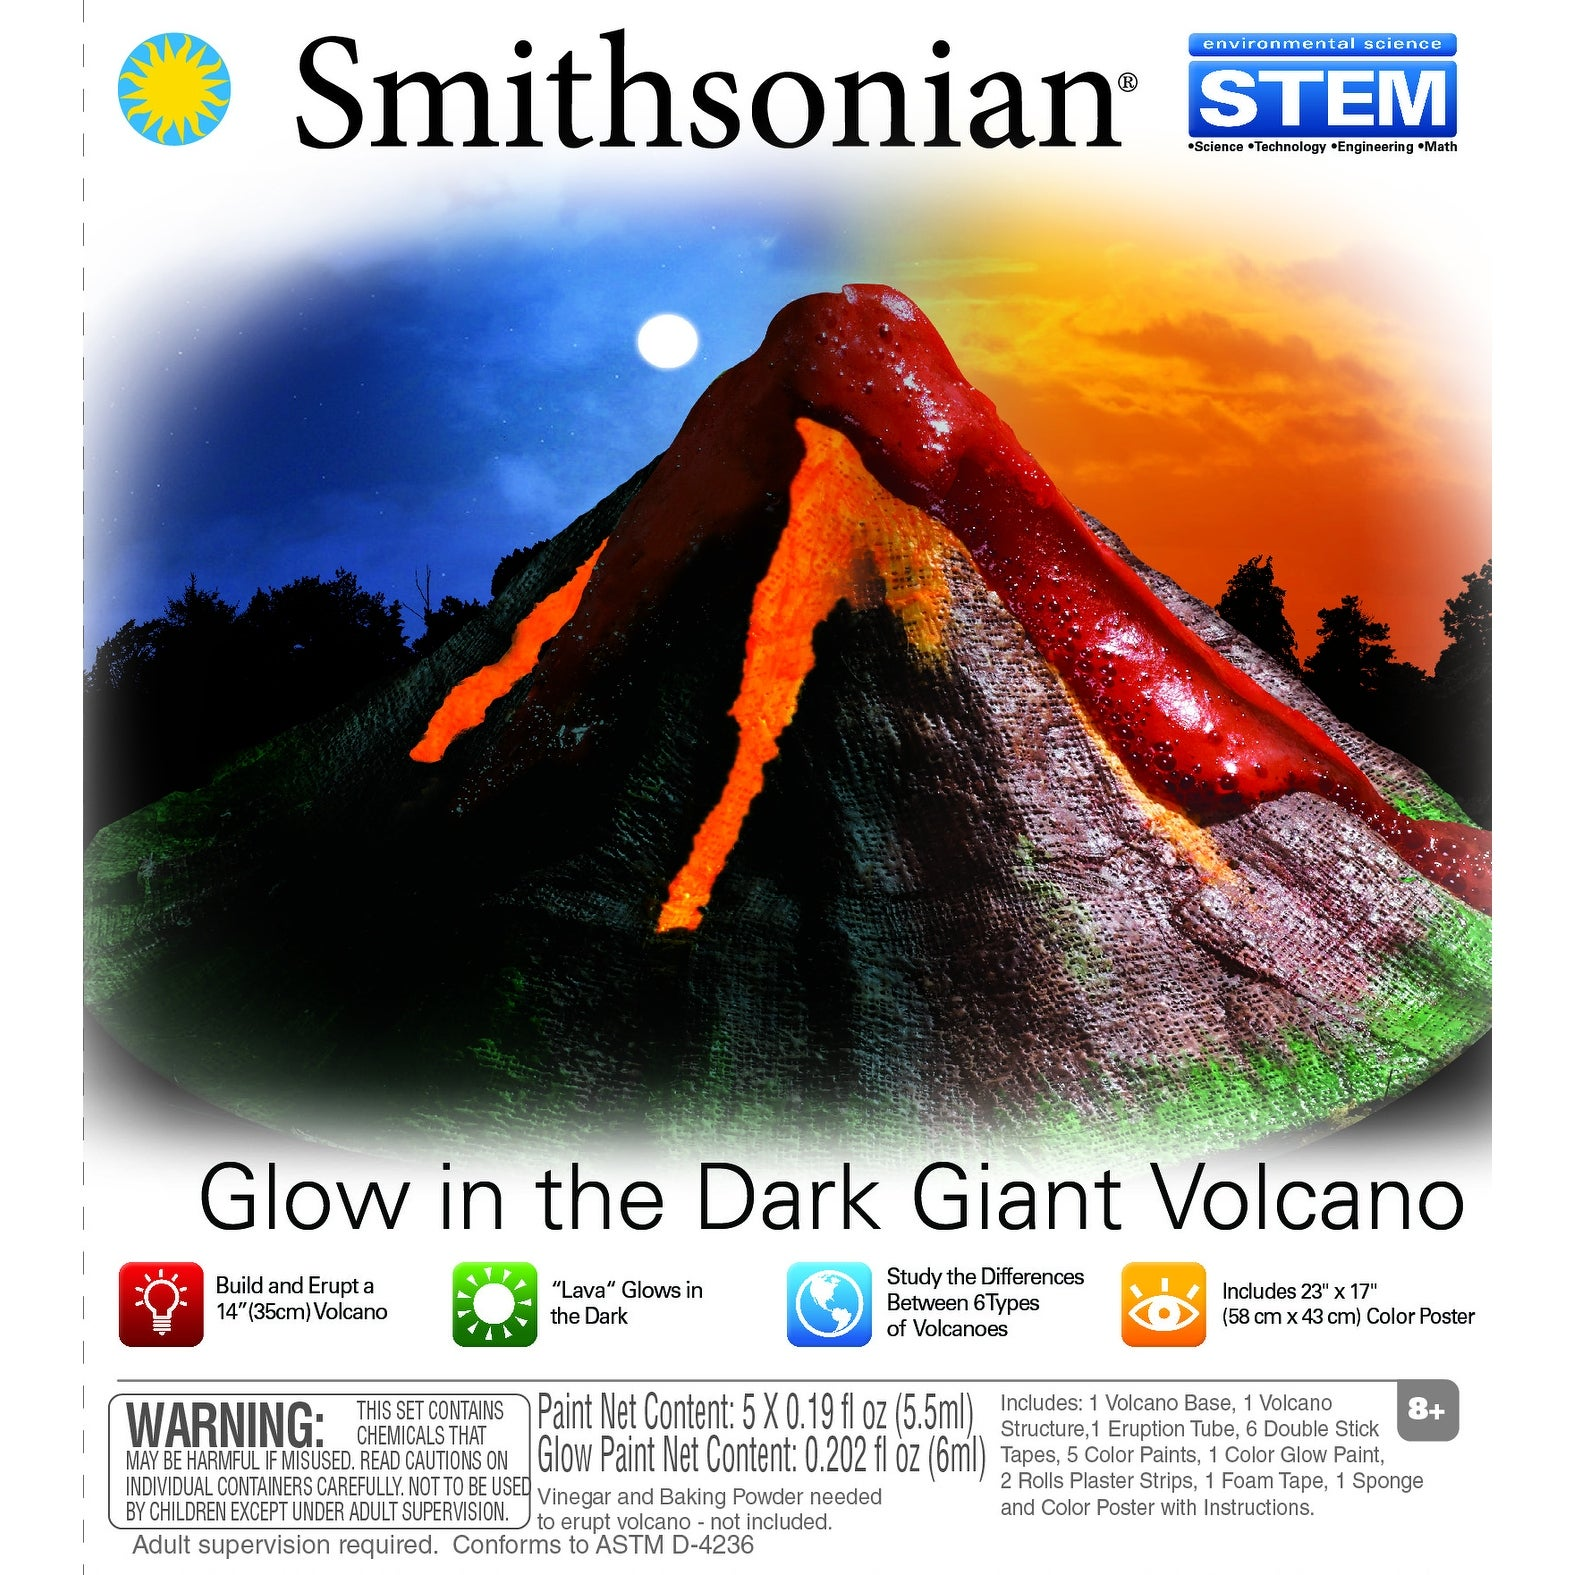 Smithsonian Giant Volcano Science Kit with Glow-in-the-Dark Lava